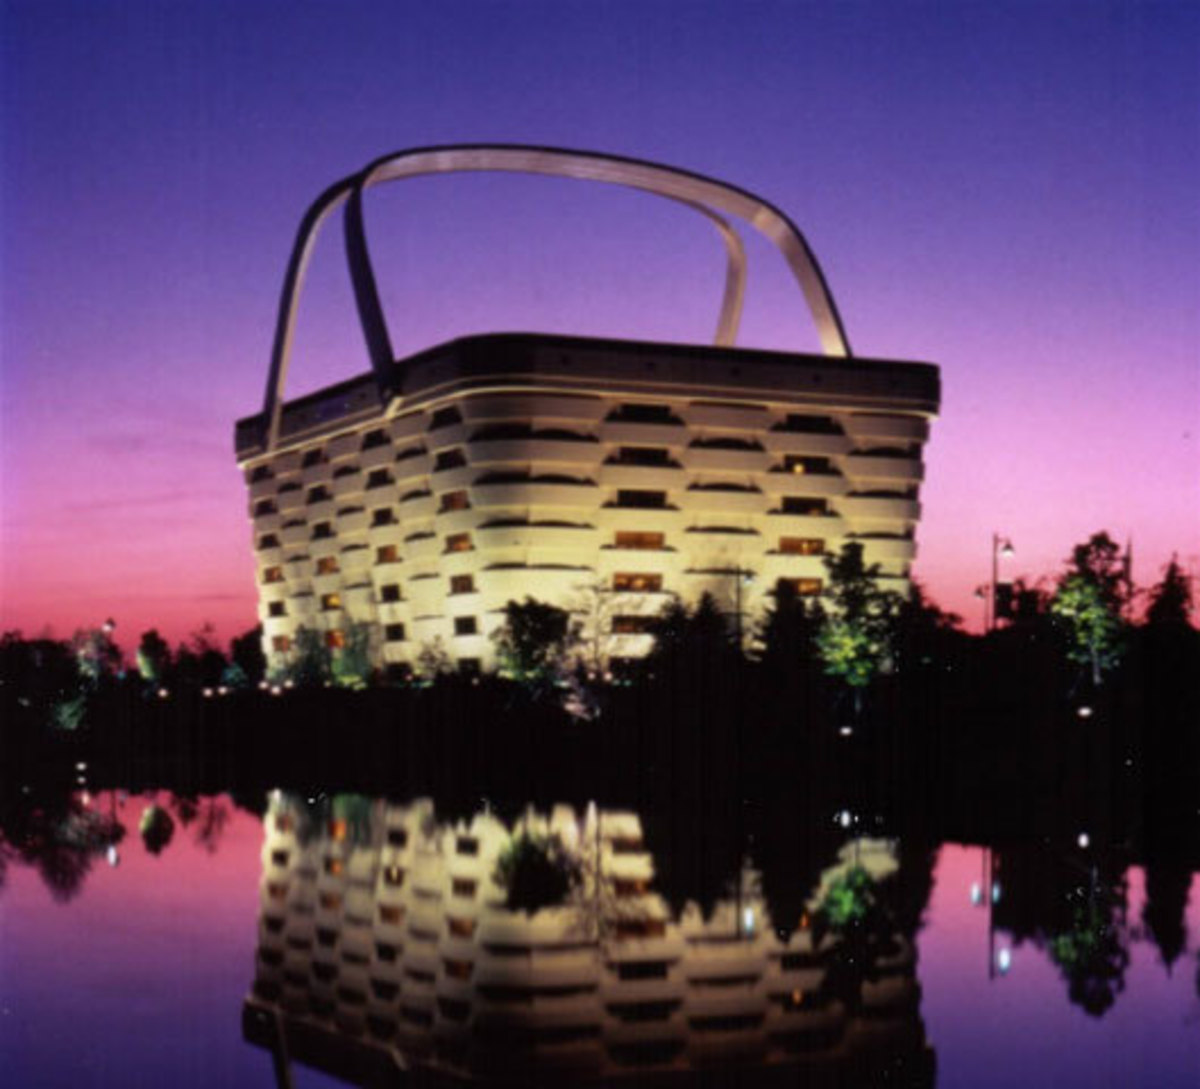 The Longaberger office building, especially pretty at night.